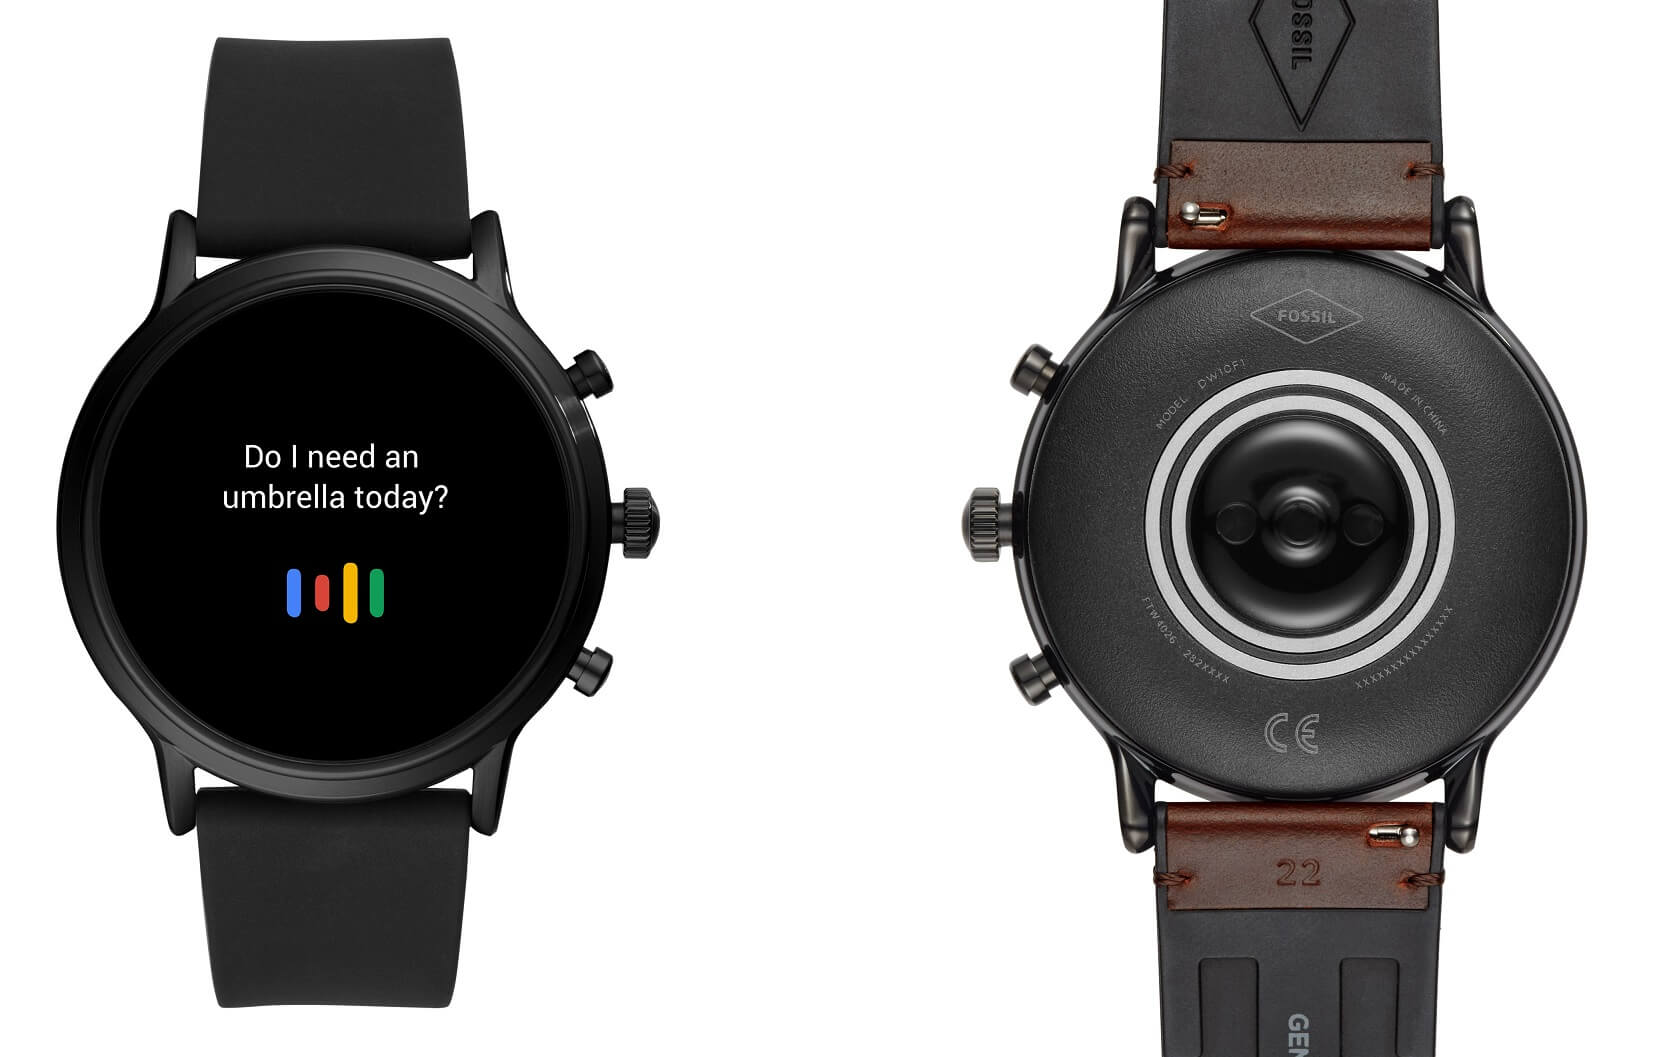 Fossil's latest smartwatch is almost as good as an Apple Watch